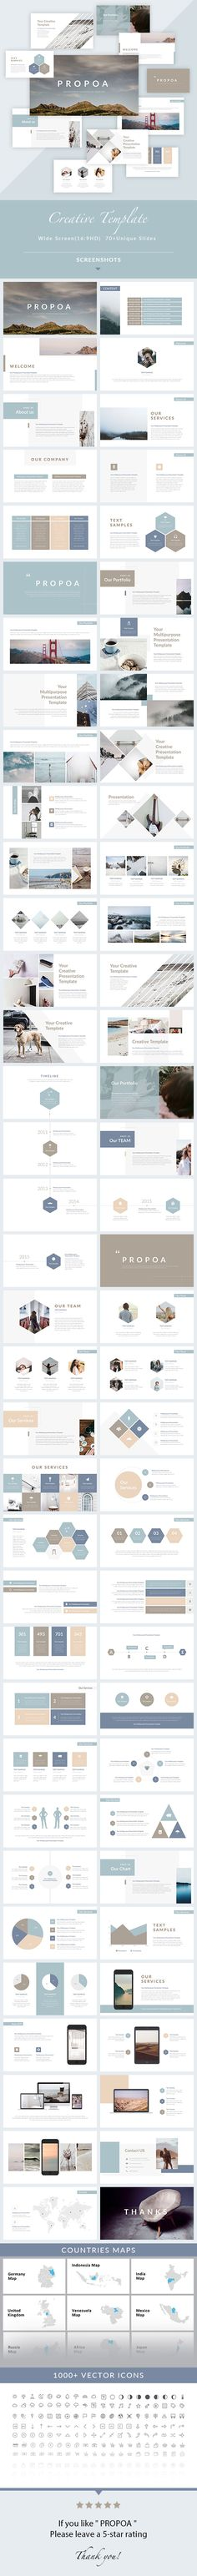 Propoa - Keynote Presentation Template - Creative Keynote Templates